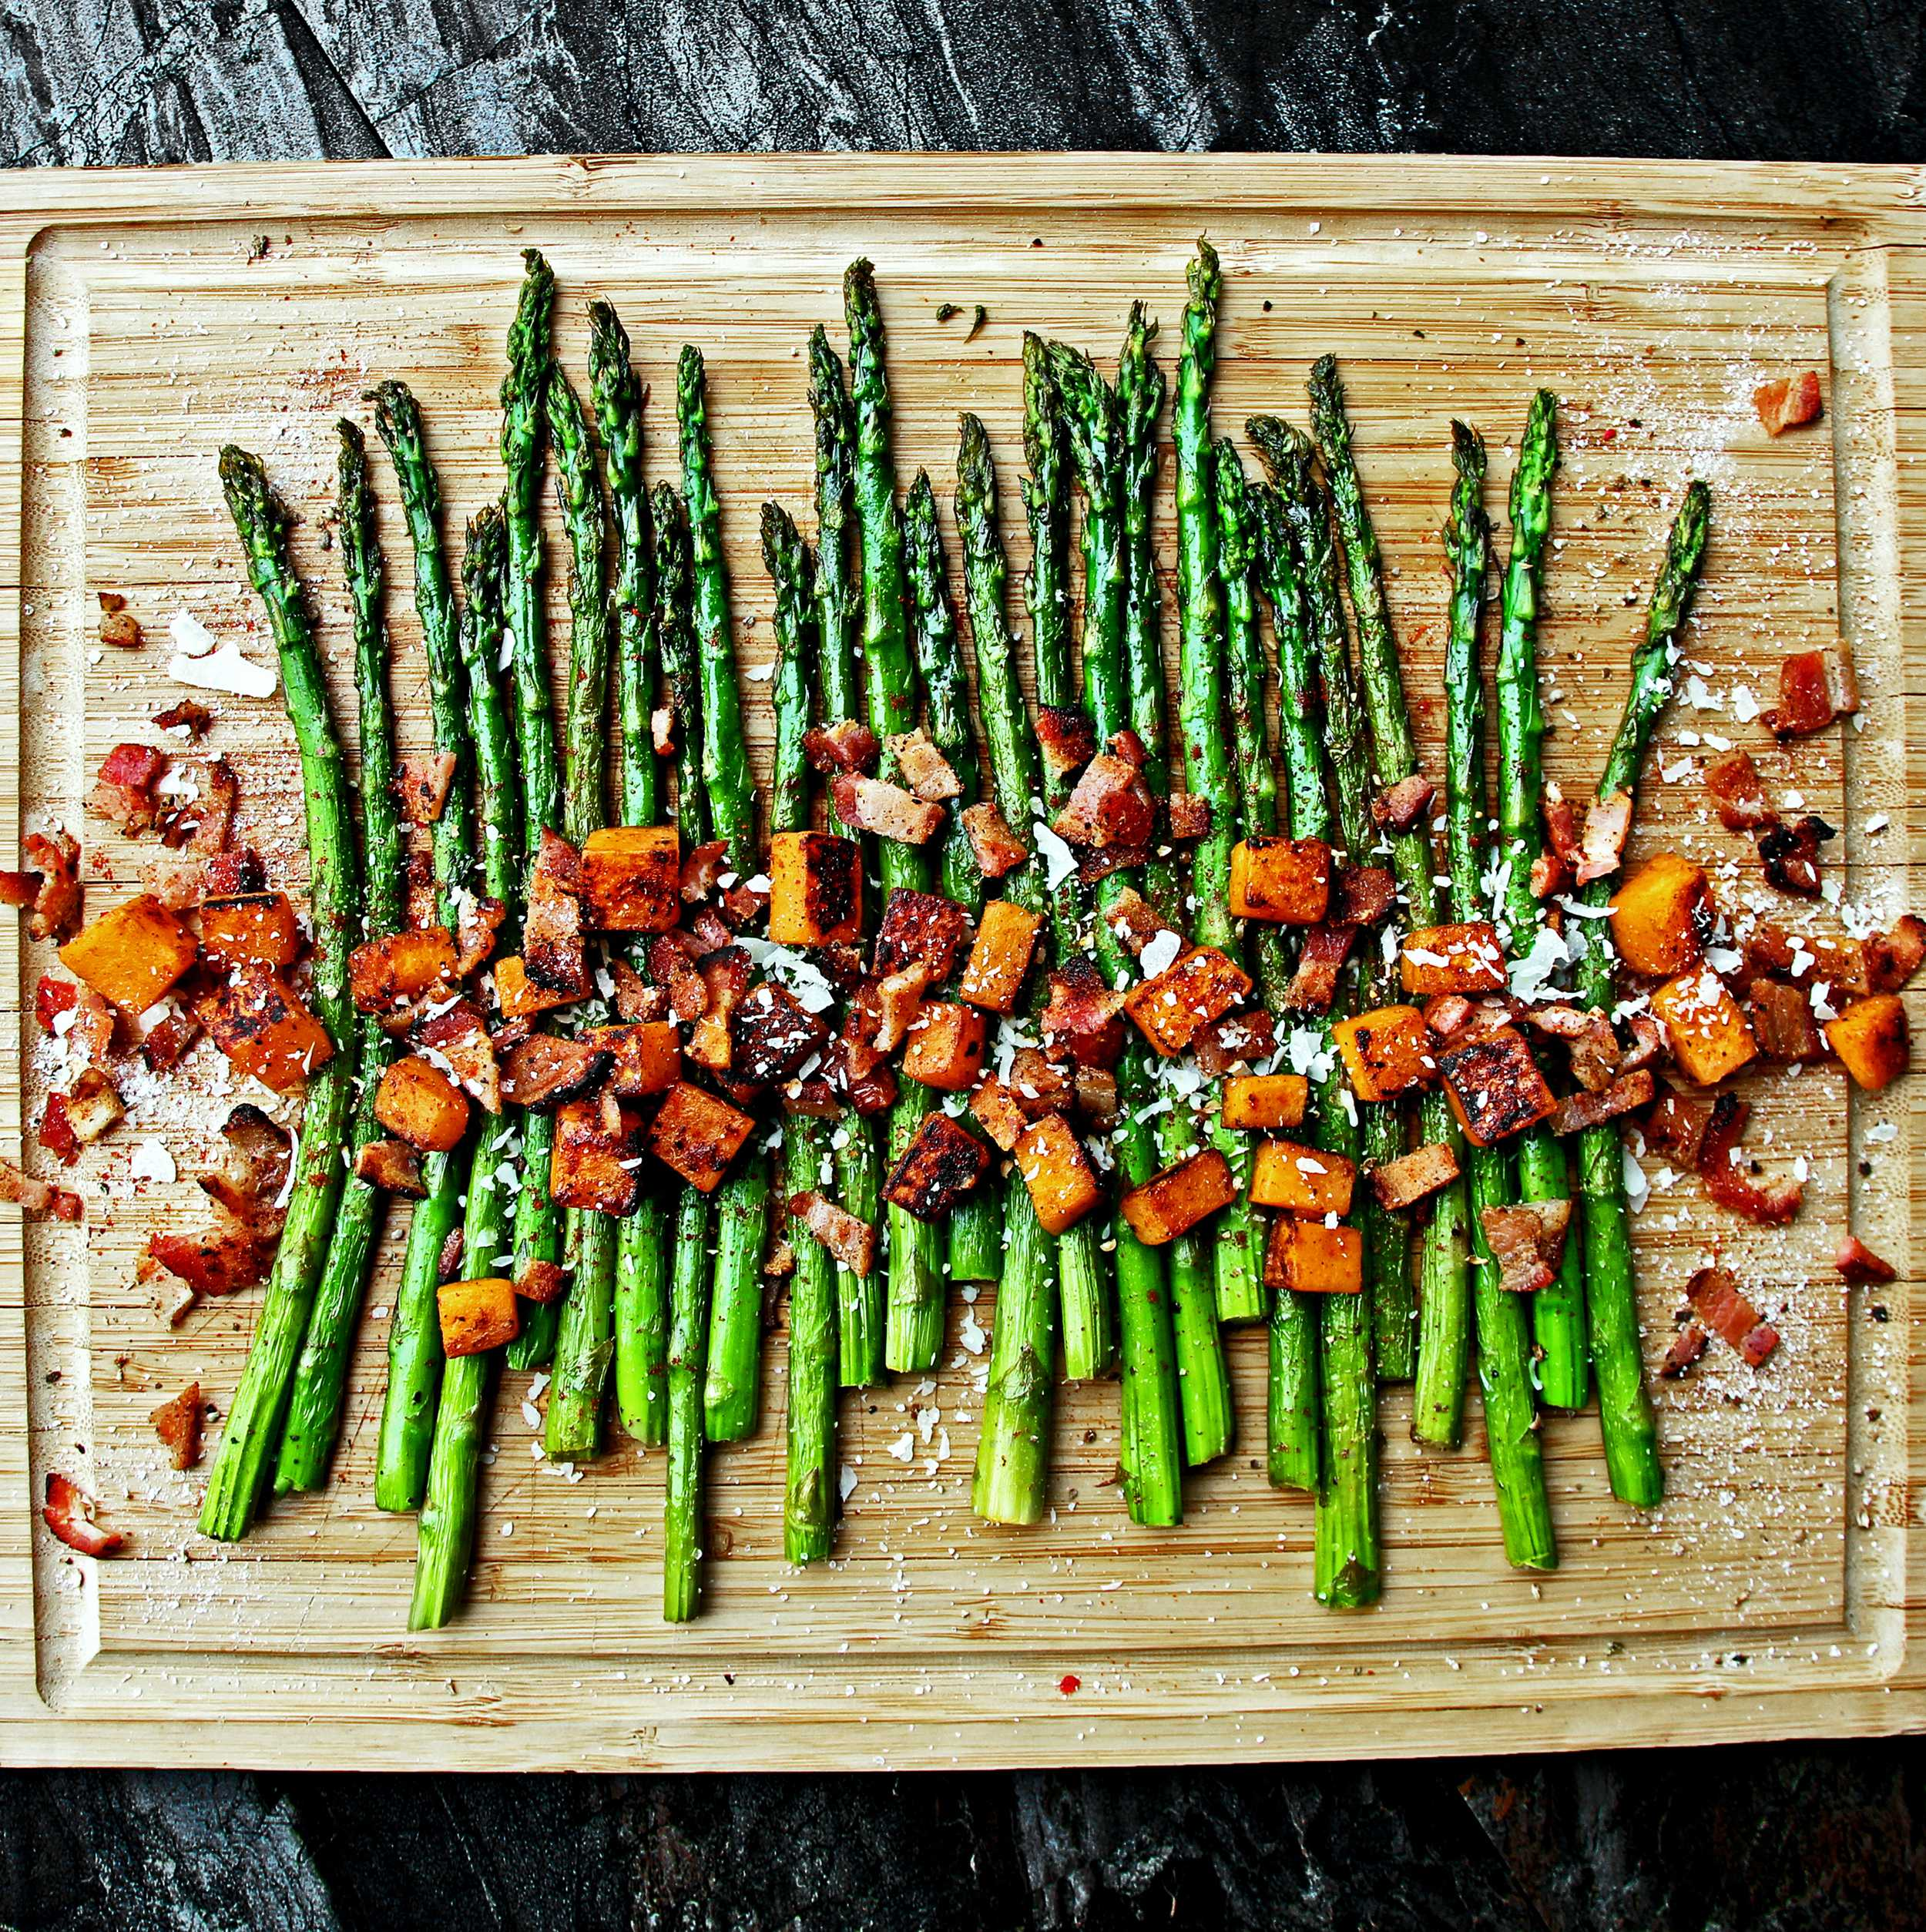 Roasted Asparagus & Sweet Potatoes with Homemade Bacon Bits, Shaved Parmesan & Coarse Seasonings.